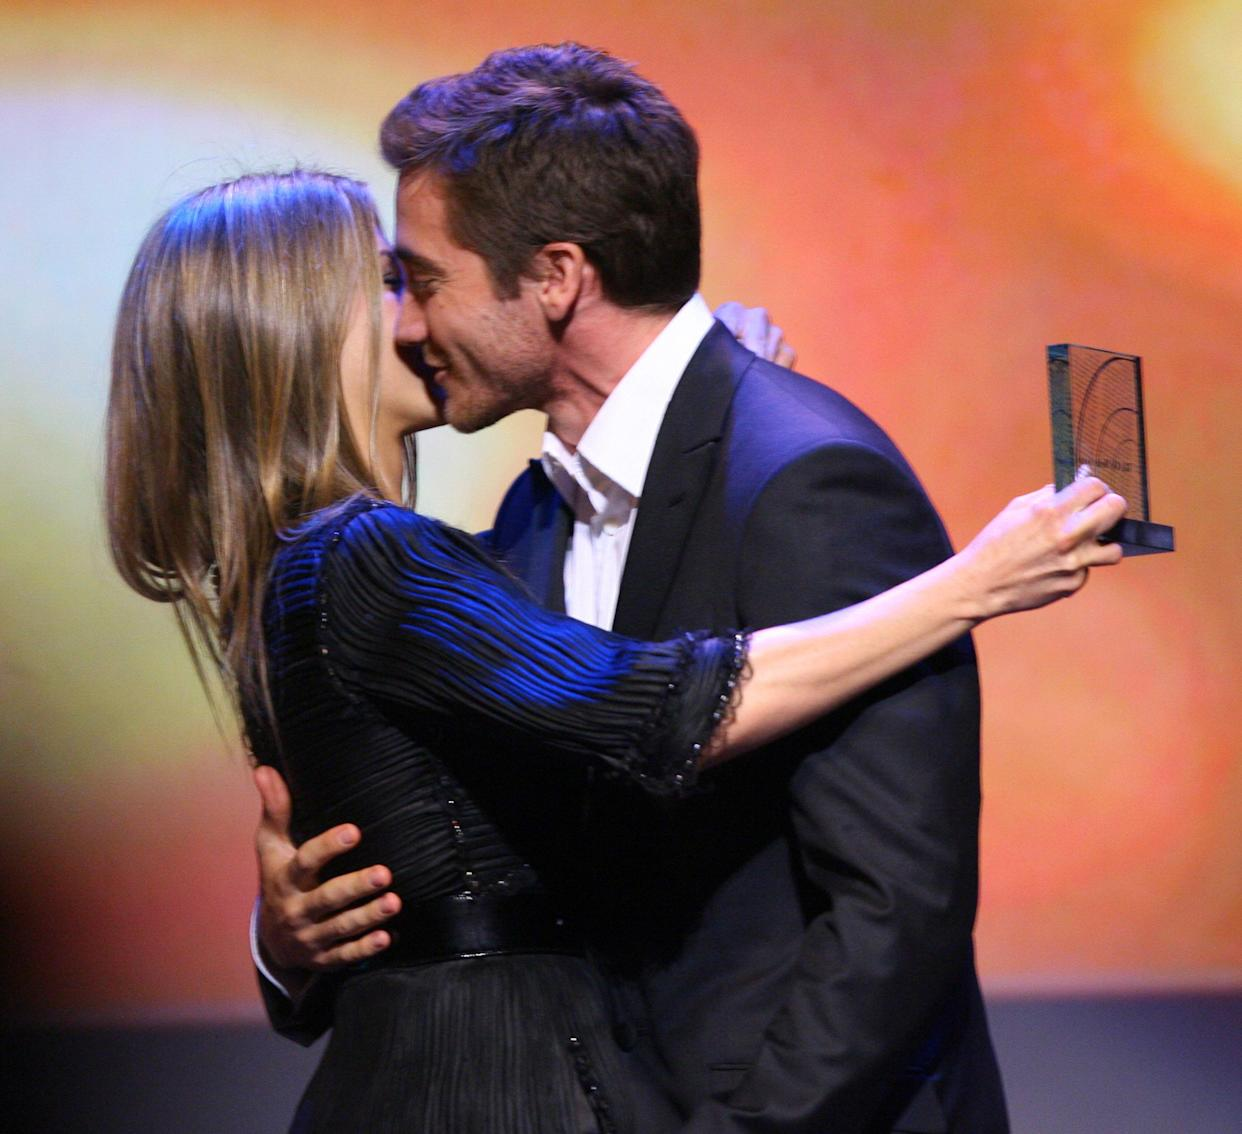 Jennifer Aniston and Jake Gyllenhaal during 18th Annual GLAAD Media Awards - Los Angeles - Show at Kodak Theater in Los Angeles, California, United States. (Photo by John Shearer/WireImage)